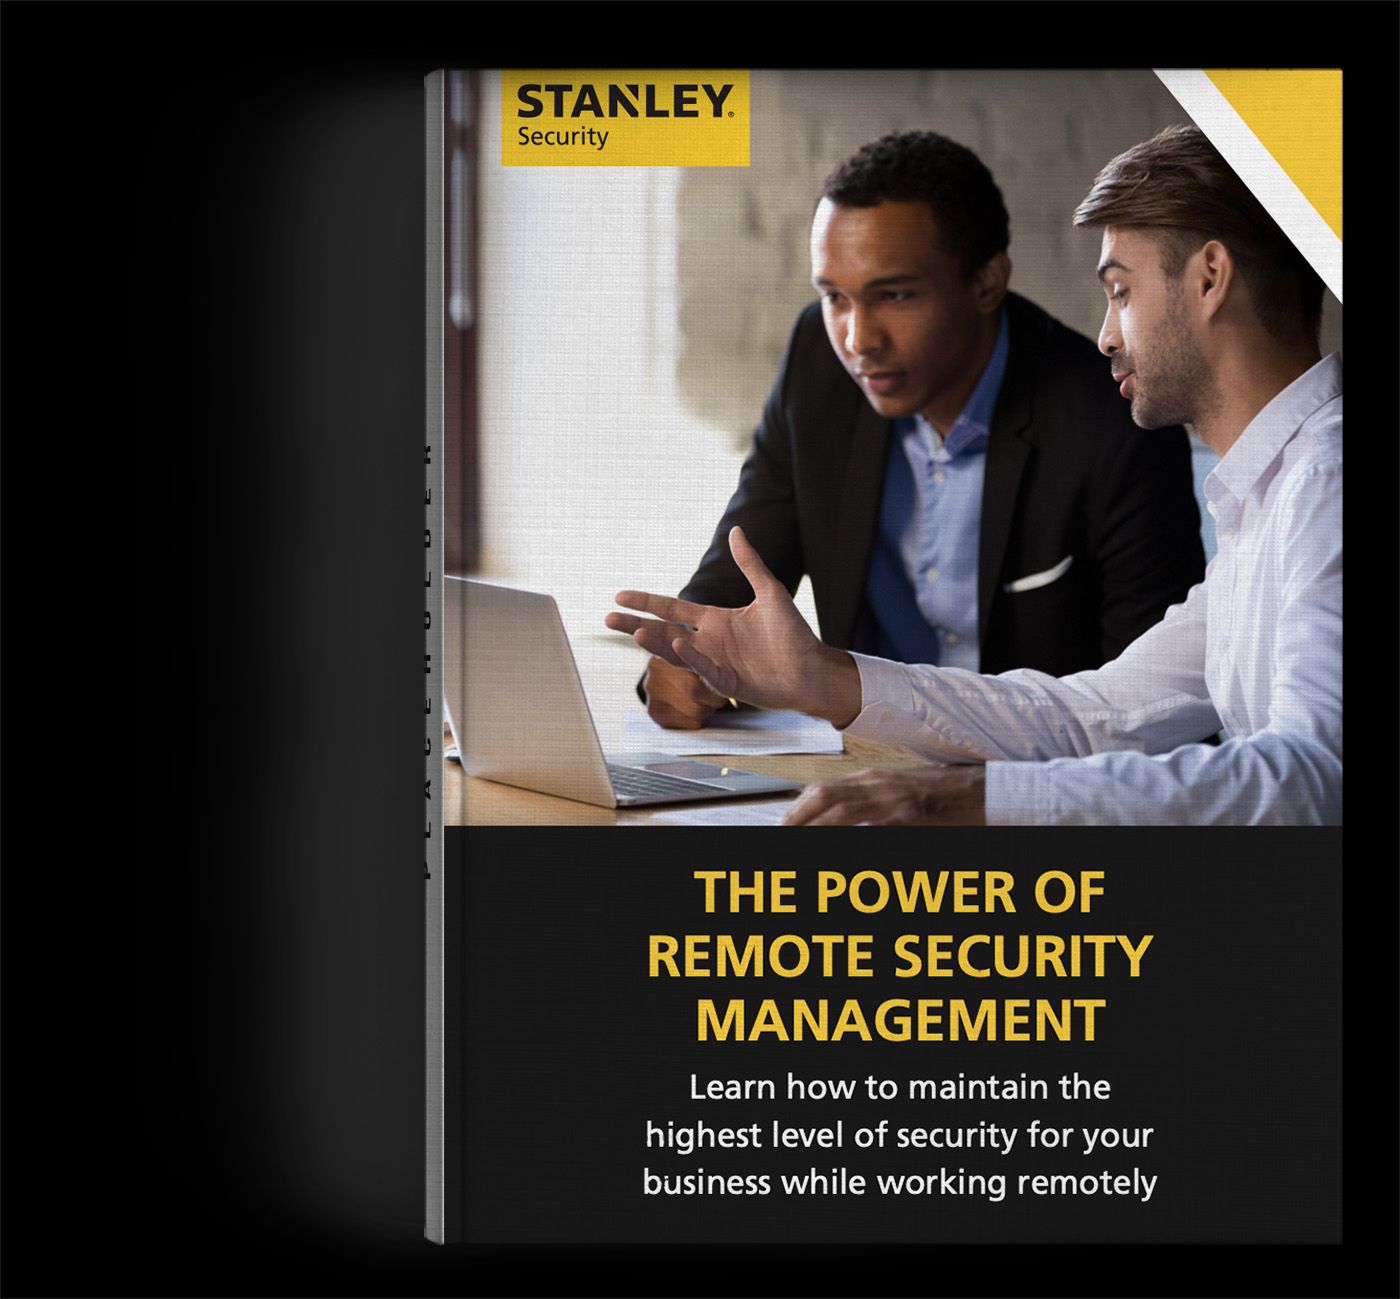 image of the front cover of the ebook showing an employee discussing remote security management options with a client